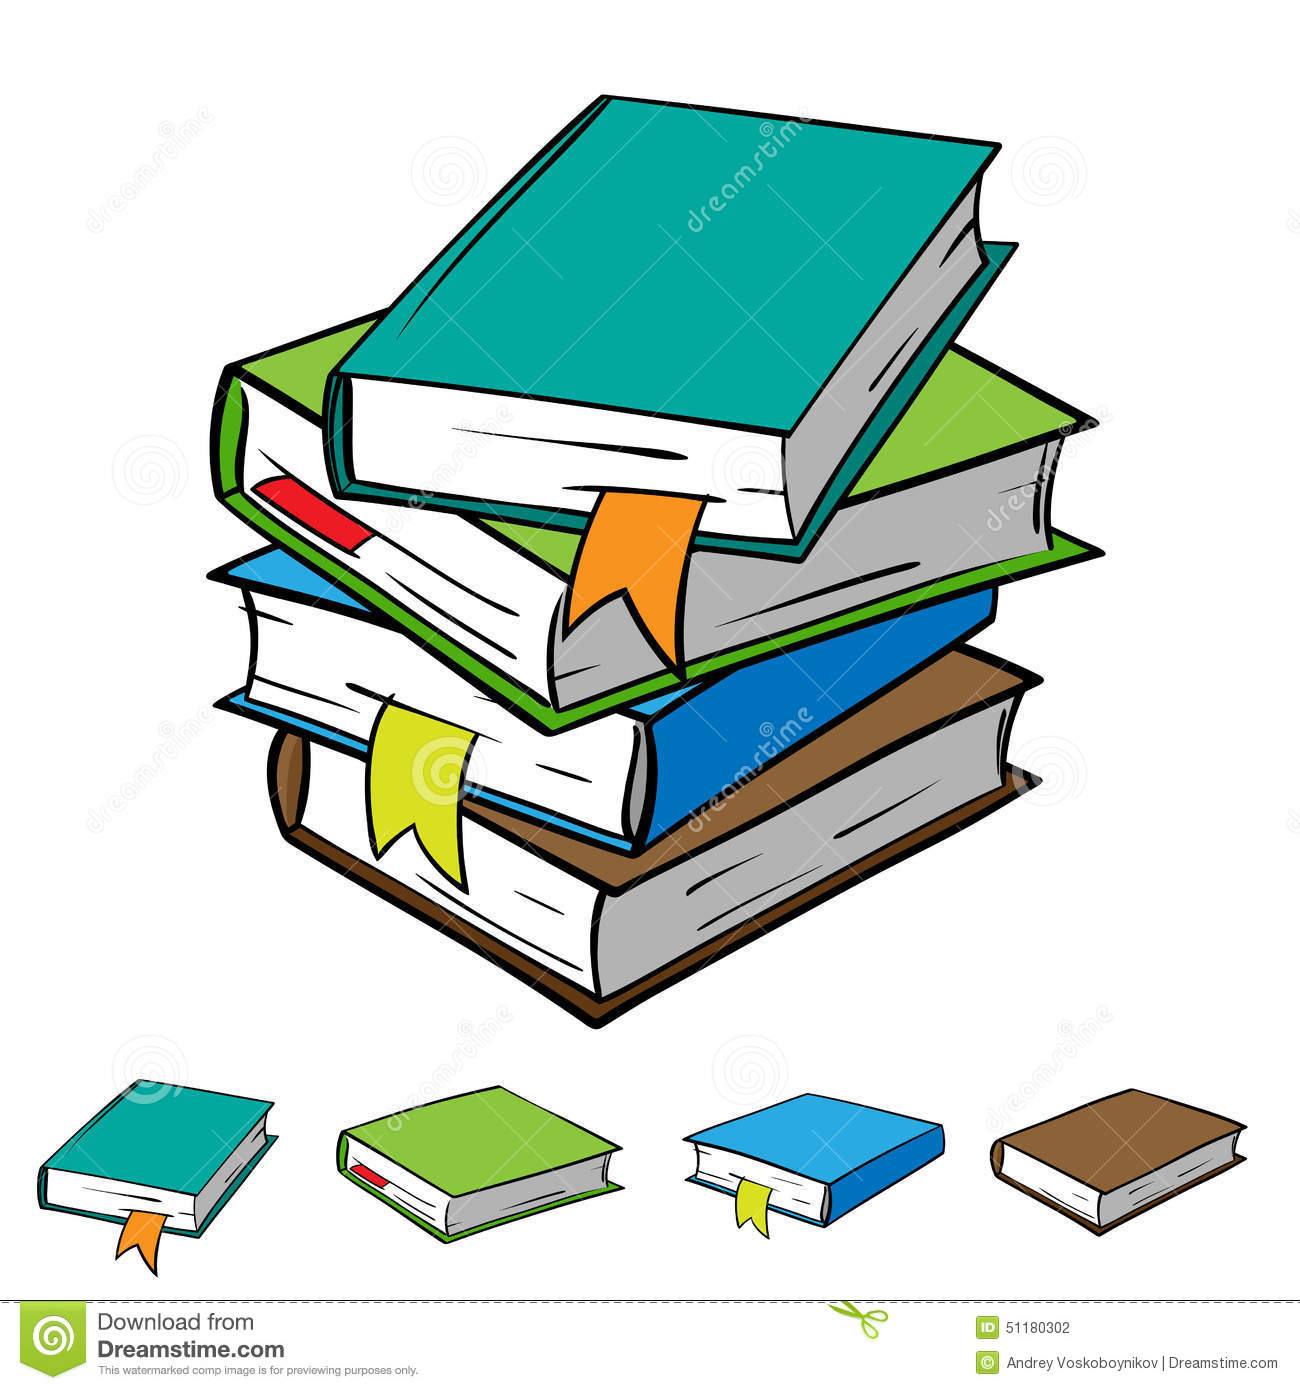 research paper themes Check out this expository essay overview and 17 expository essay topics for an outstanding paper  not research-based argument essays or  ideas company .